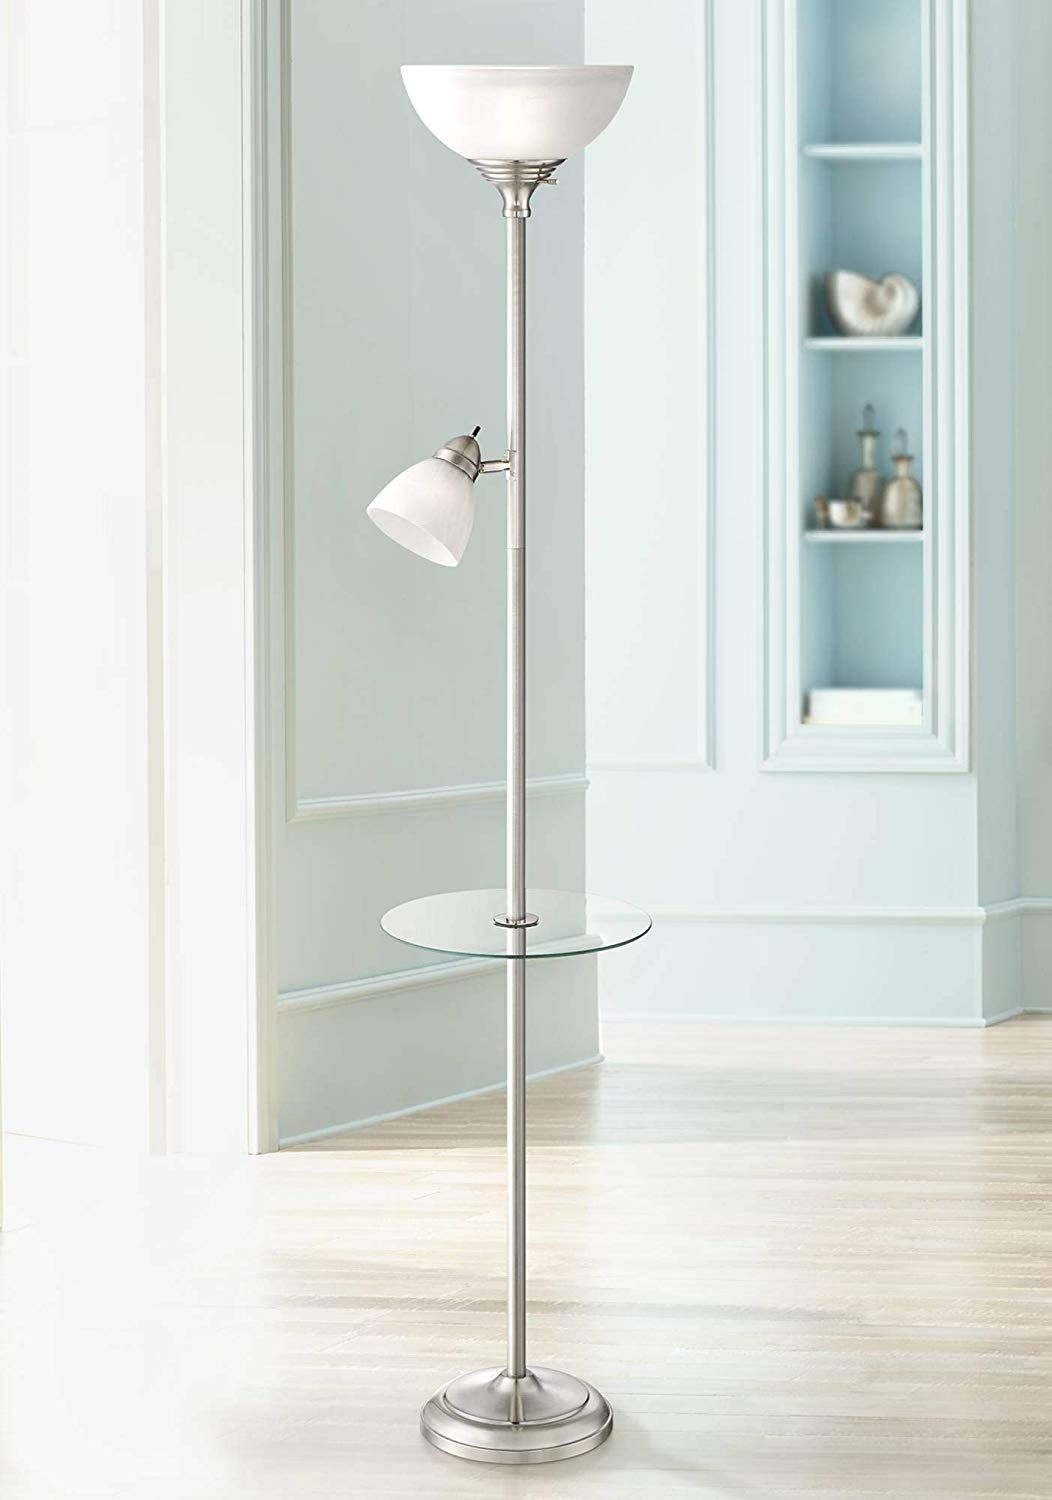 London Modern Torchiere Floor Lamp With Table Glass Brushed Nickel Adjustable Side Light For Living Room Reading Uplight 360 Lighting In 2020 Floor Lamp Torchiere Floor Lamp Lamps Living Room